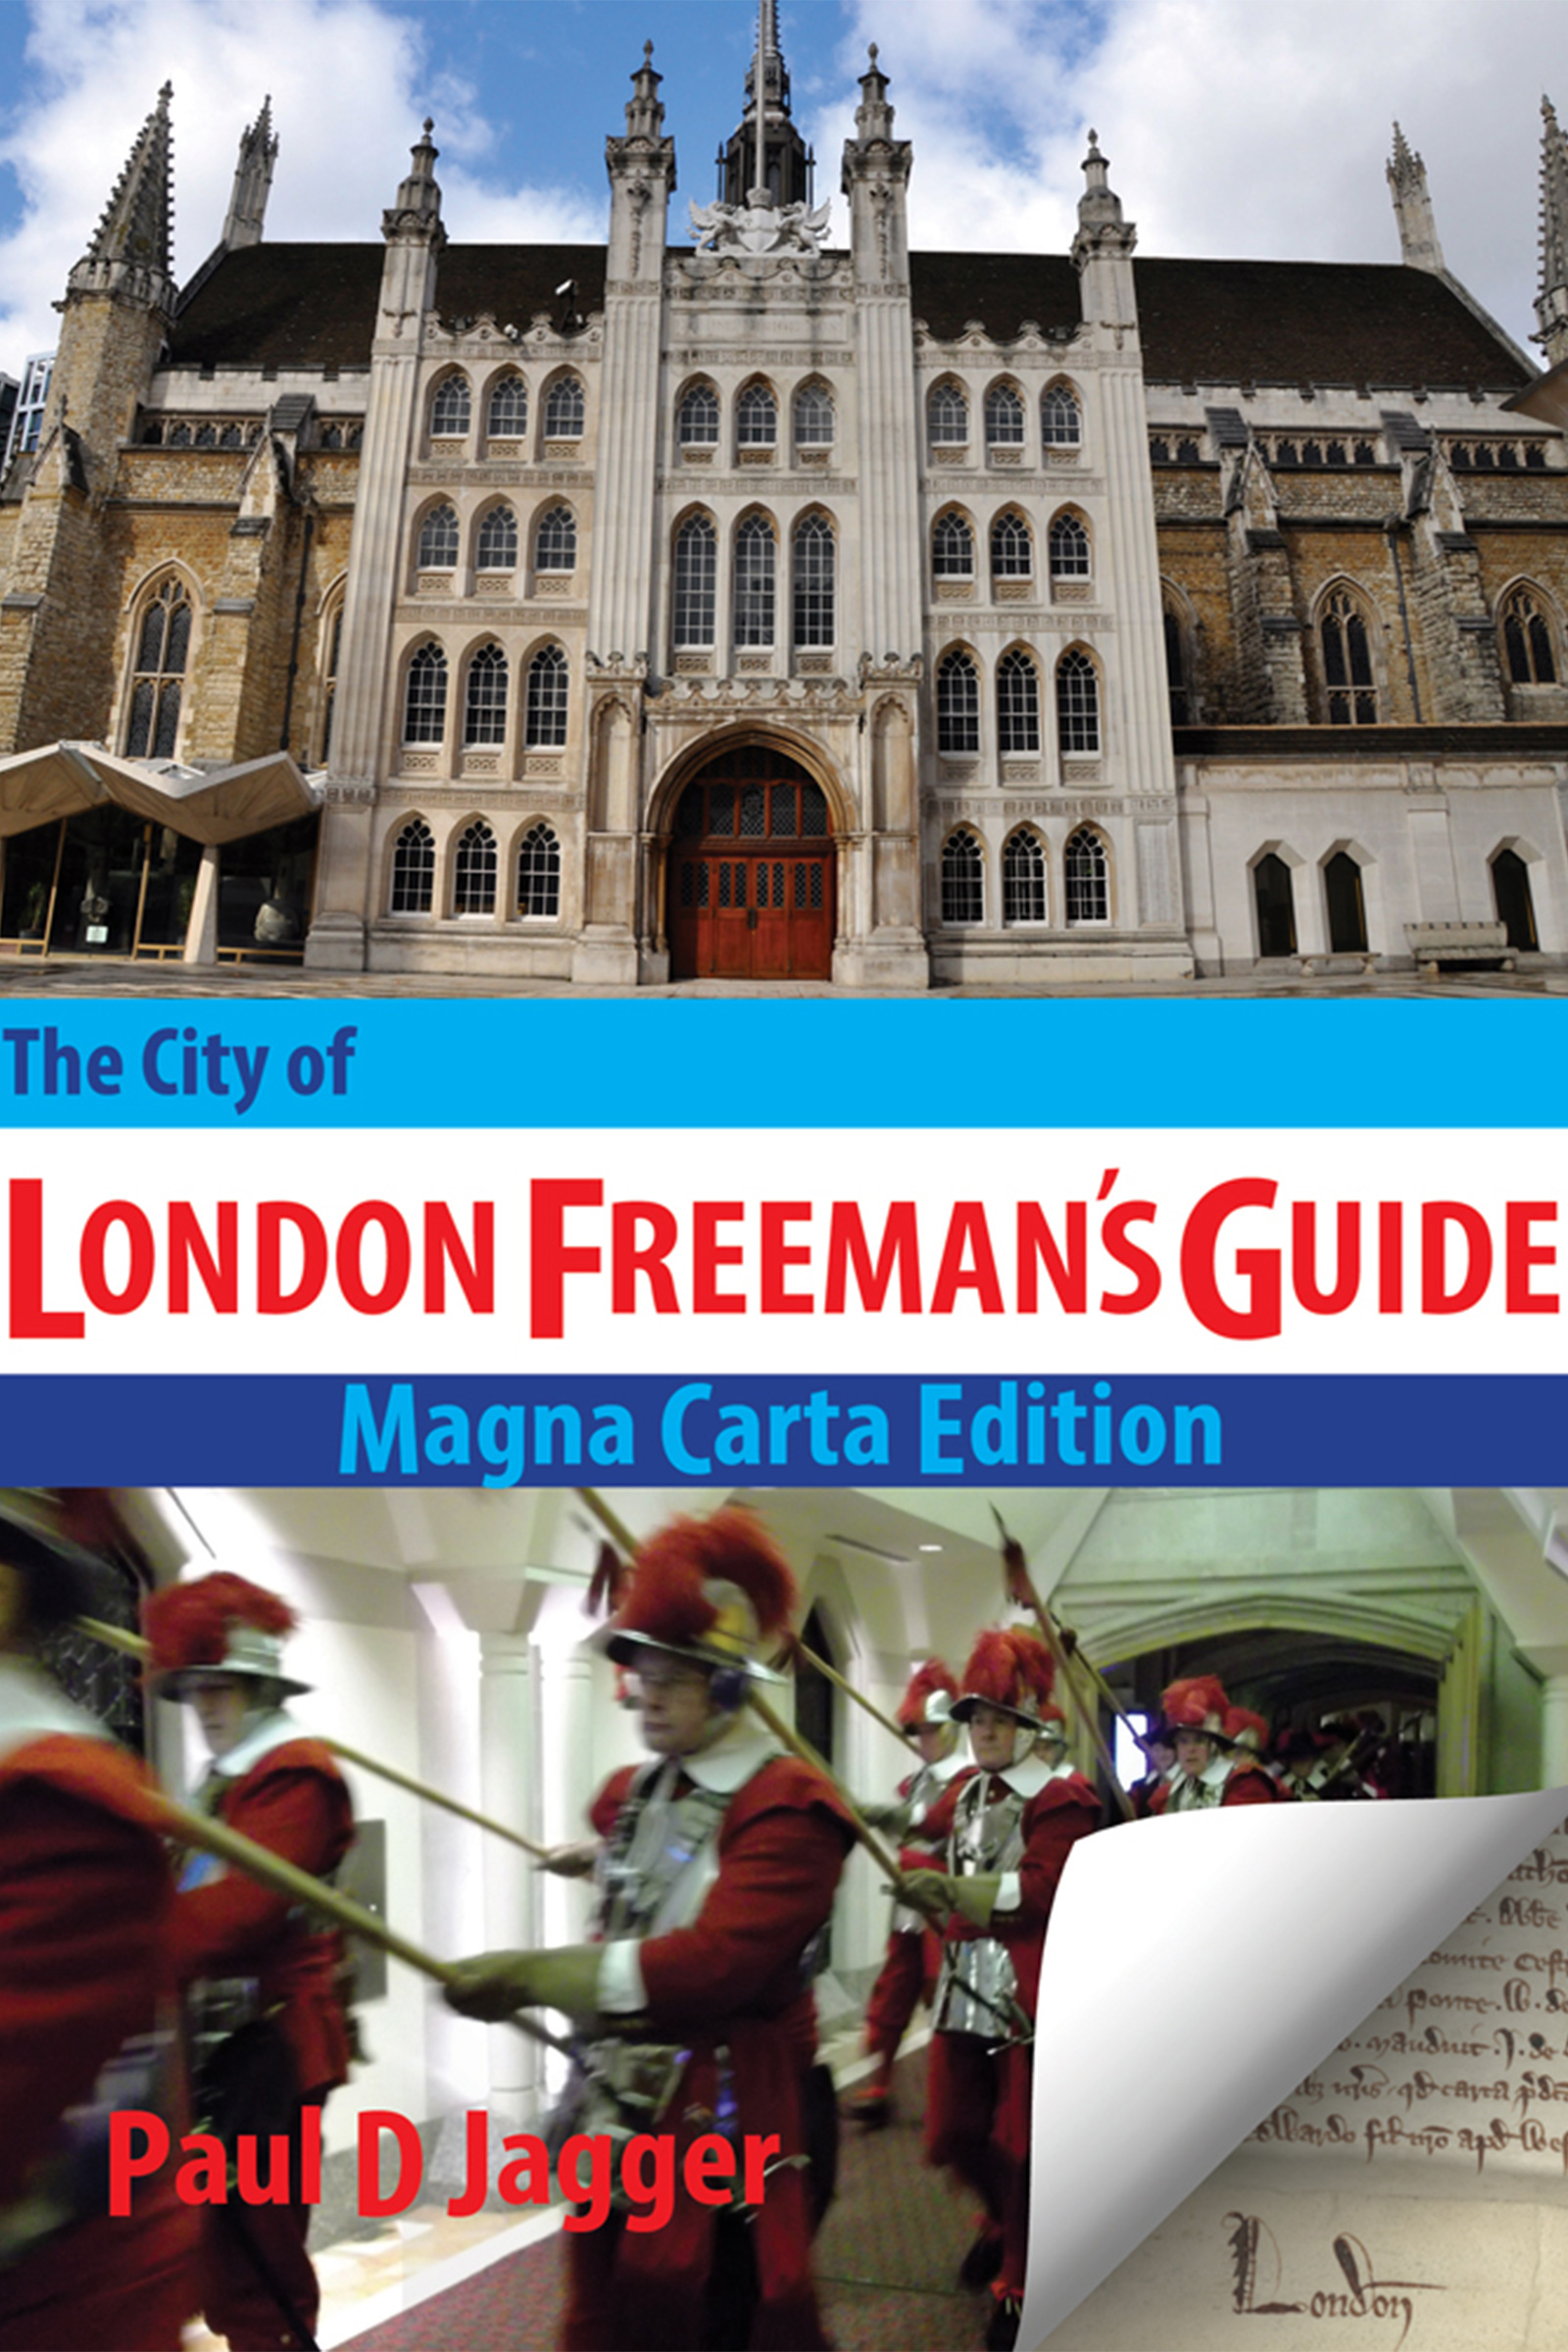 The City of London Freeman's Guide - Magna Carta Edition